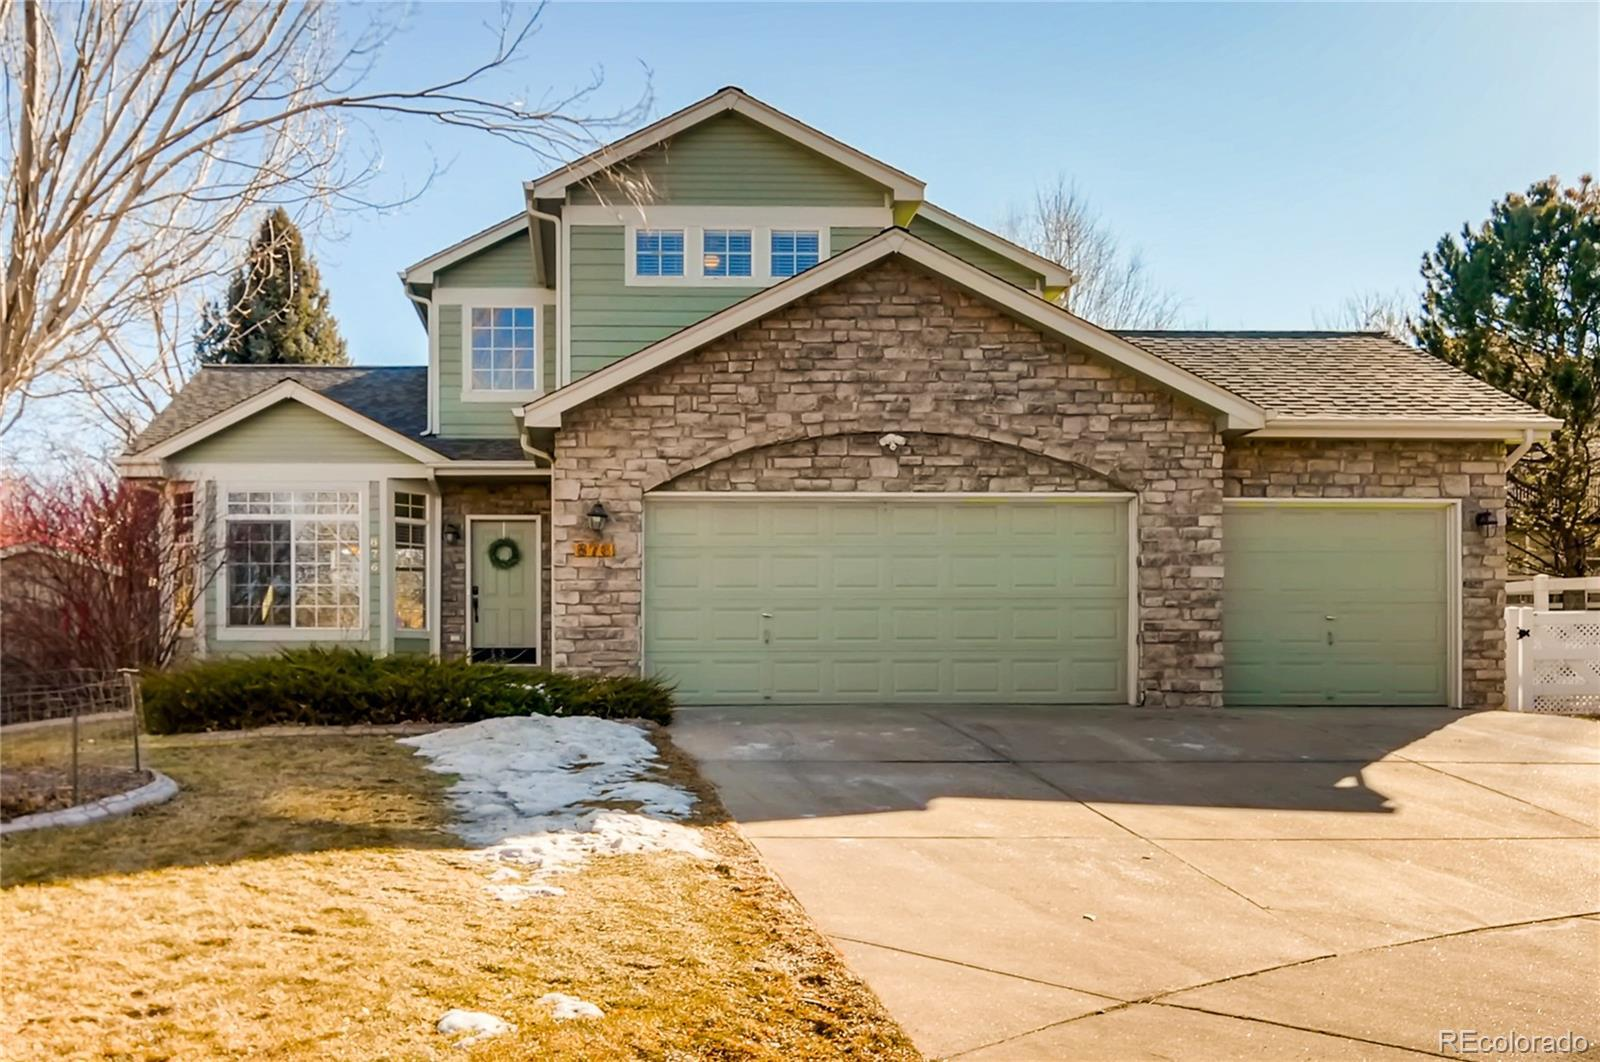 876 W 127th Court, Westminster, CO 80234 - #: 9471399